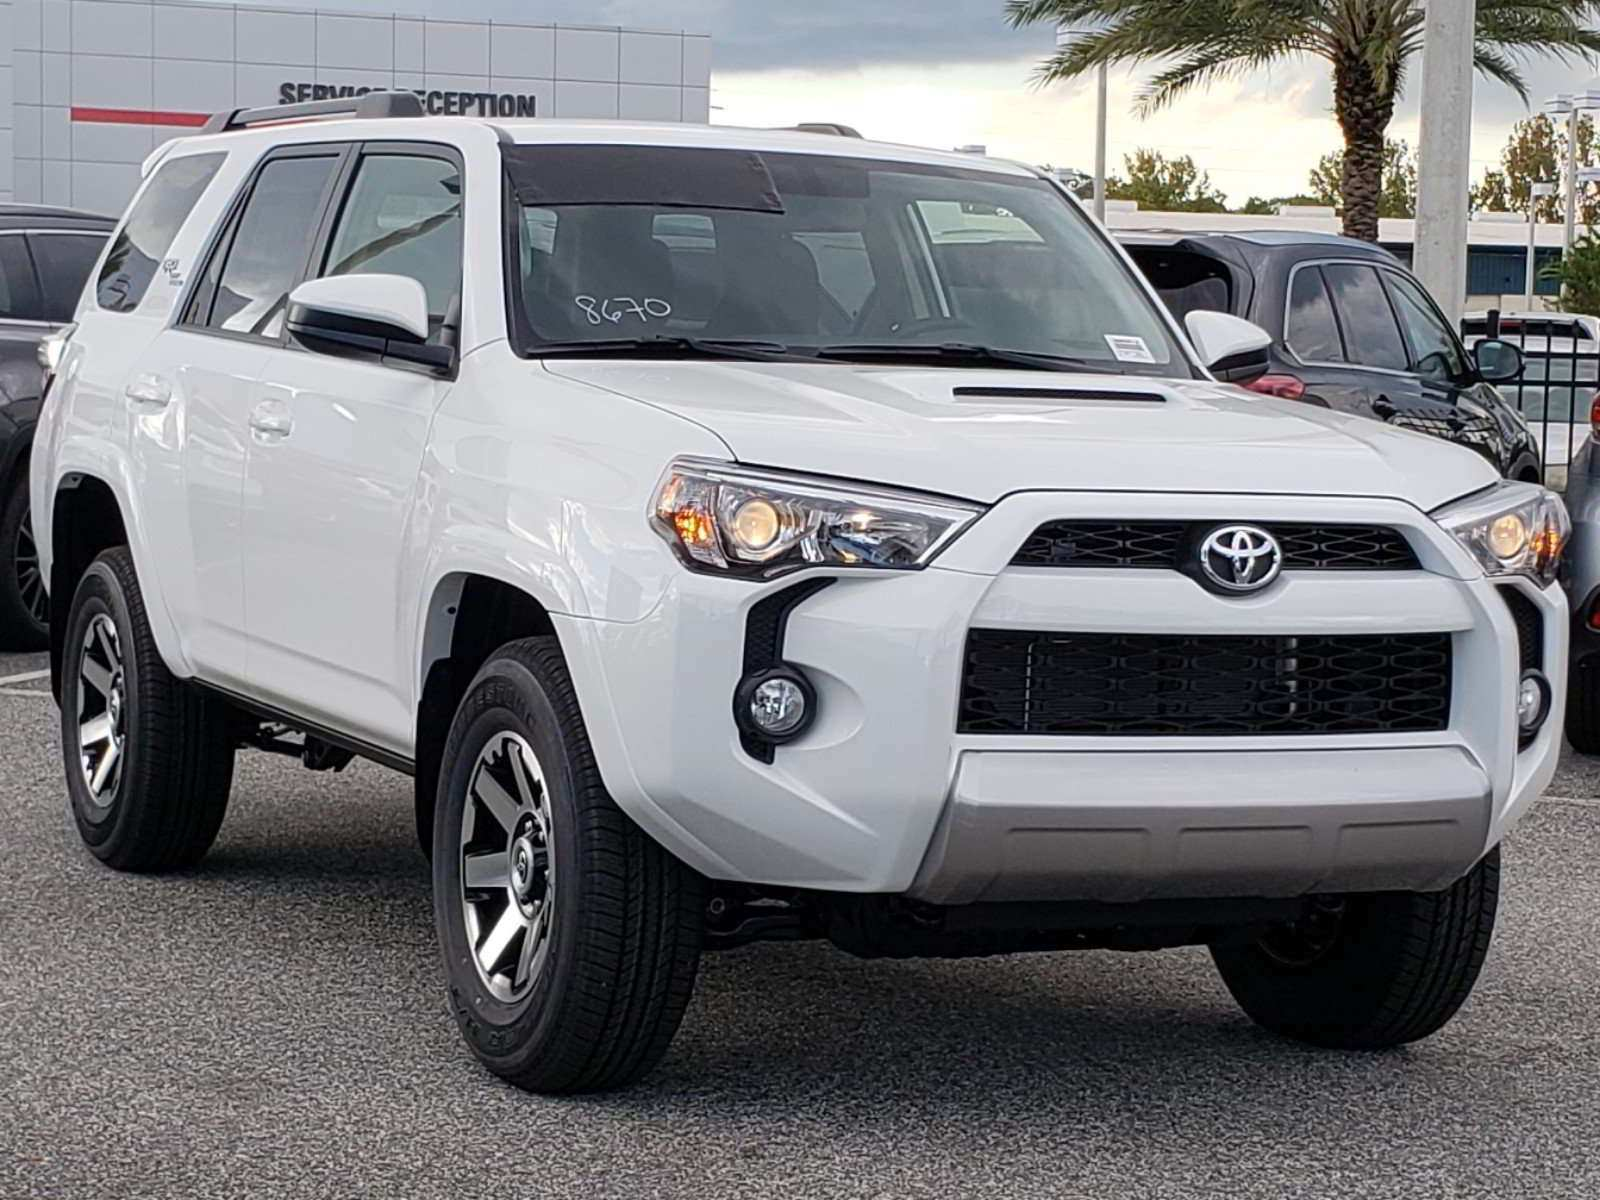 21 Gallery of 2019 Toyota 4Runner Engine Rumors with 2019 Toyota 4Runner Engine